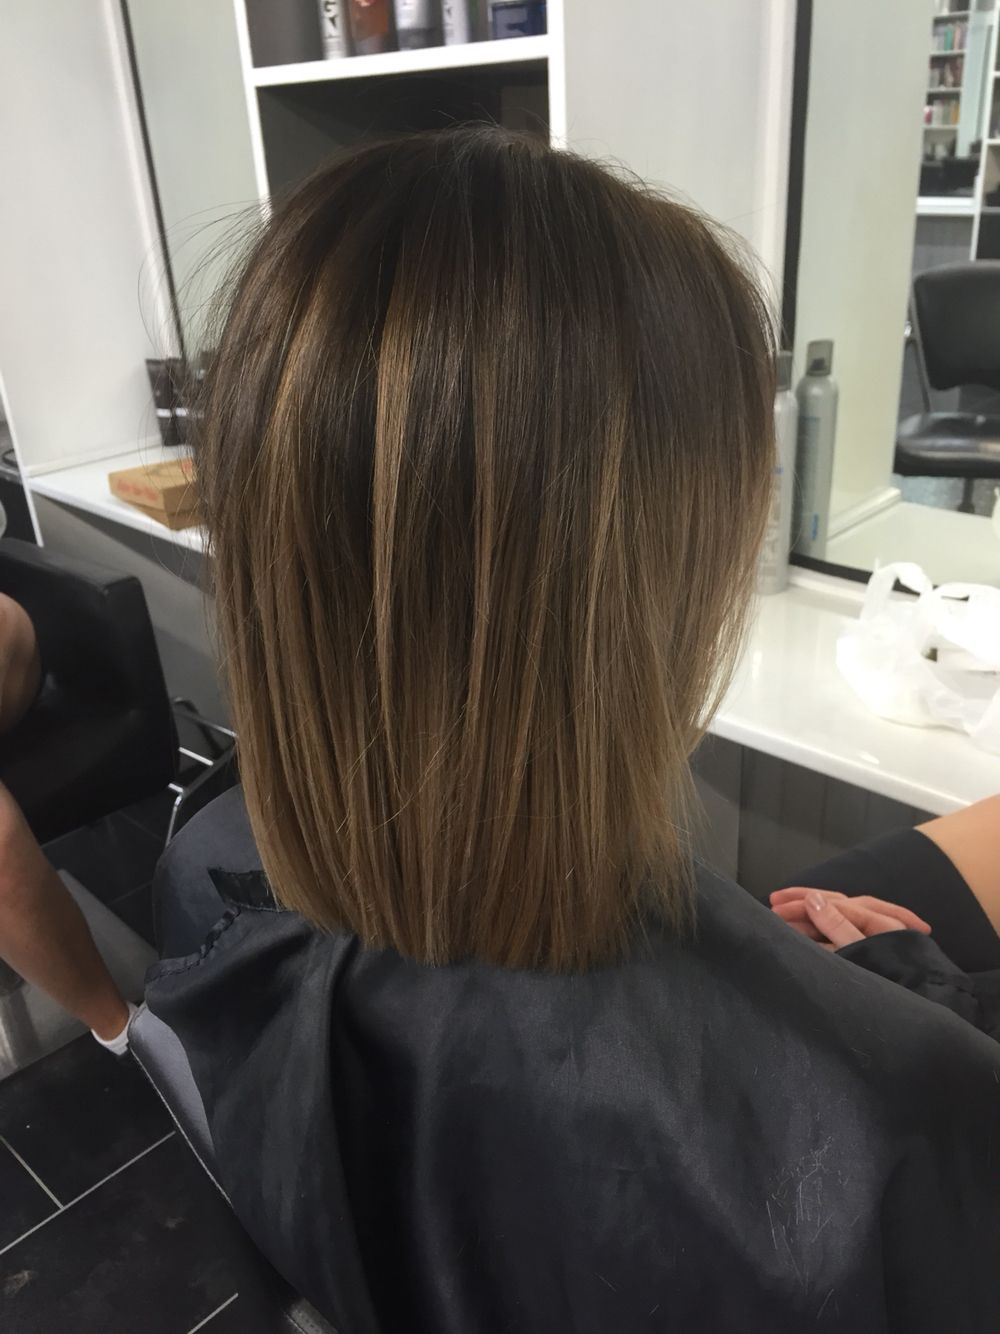 #natulique in love with this colour #balayage #beautiful #hair